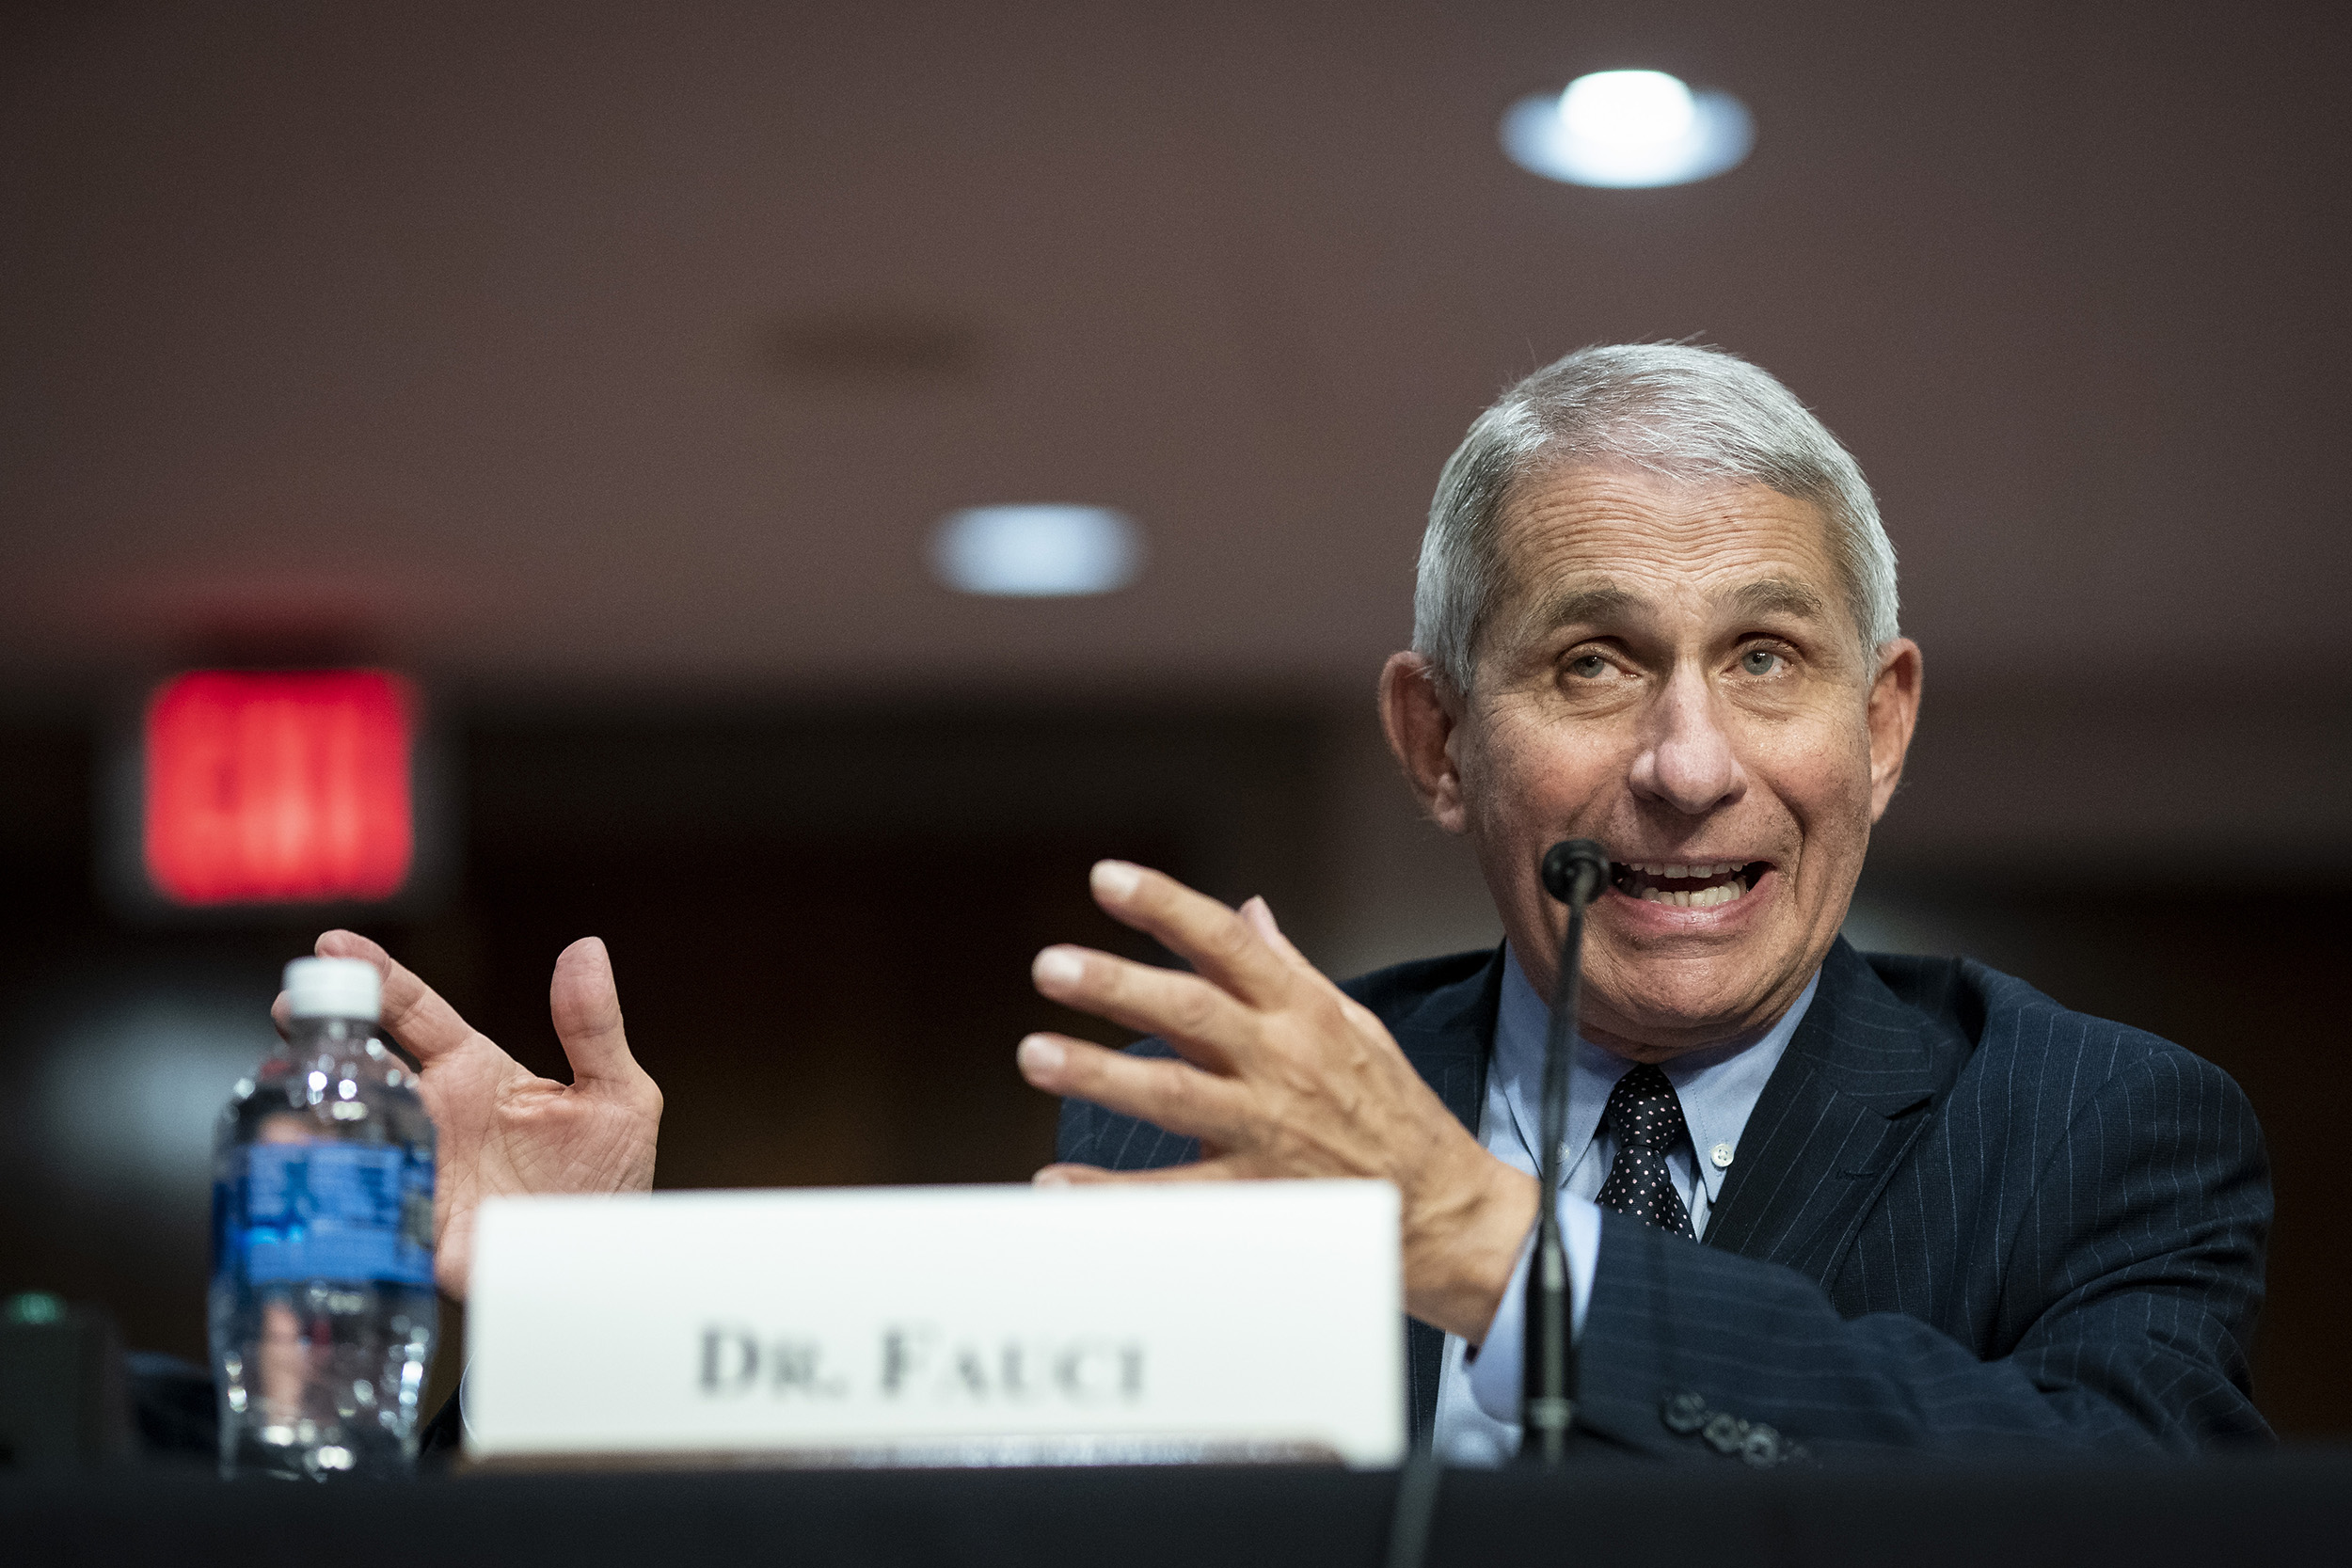 Dr. Anthony Fauci, director of the National Institute of Allergy and Infectious Diseases, speaking at a Senate hearing on June 30, in Washington, DC.